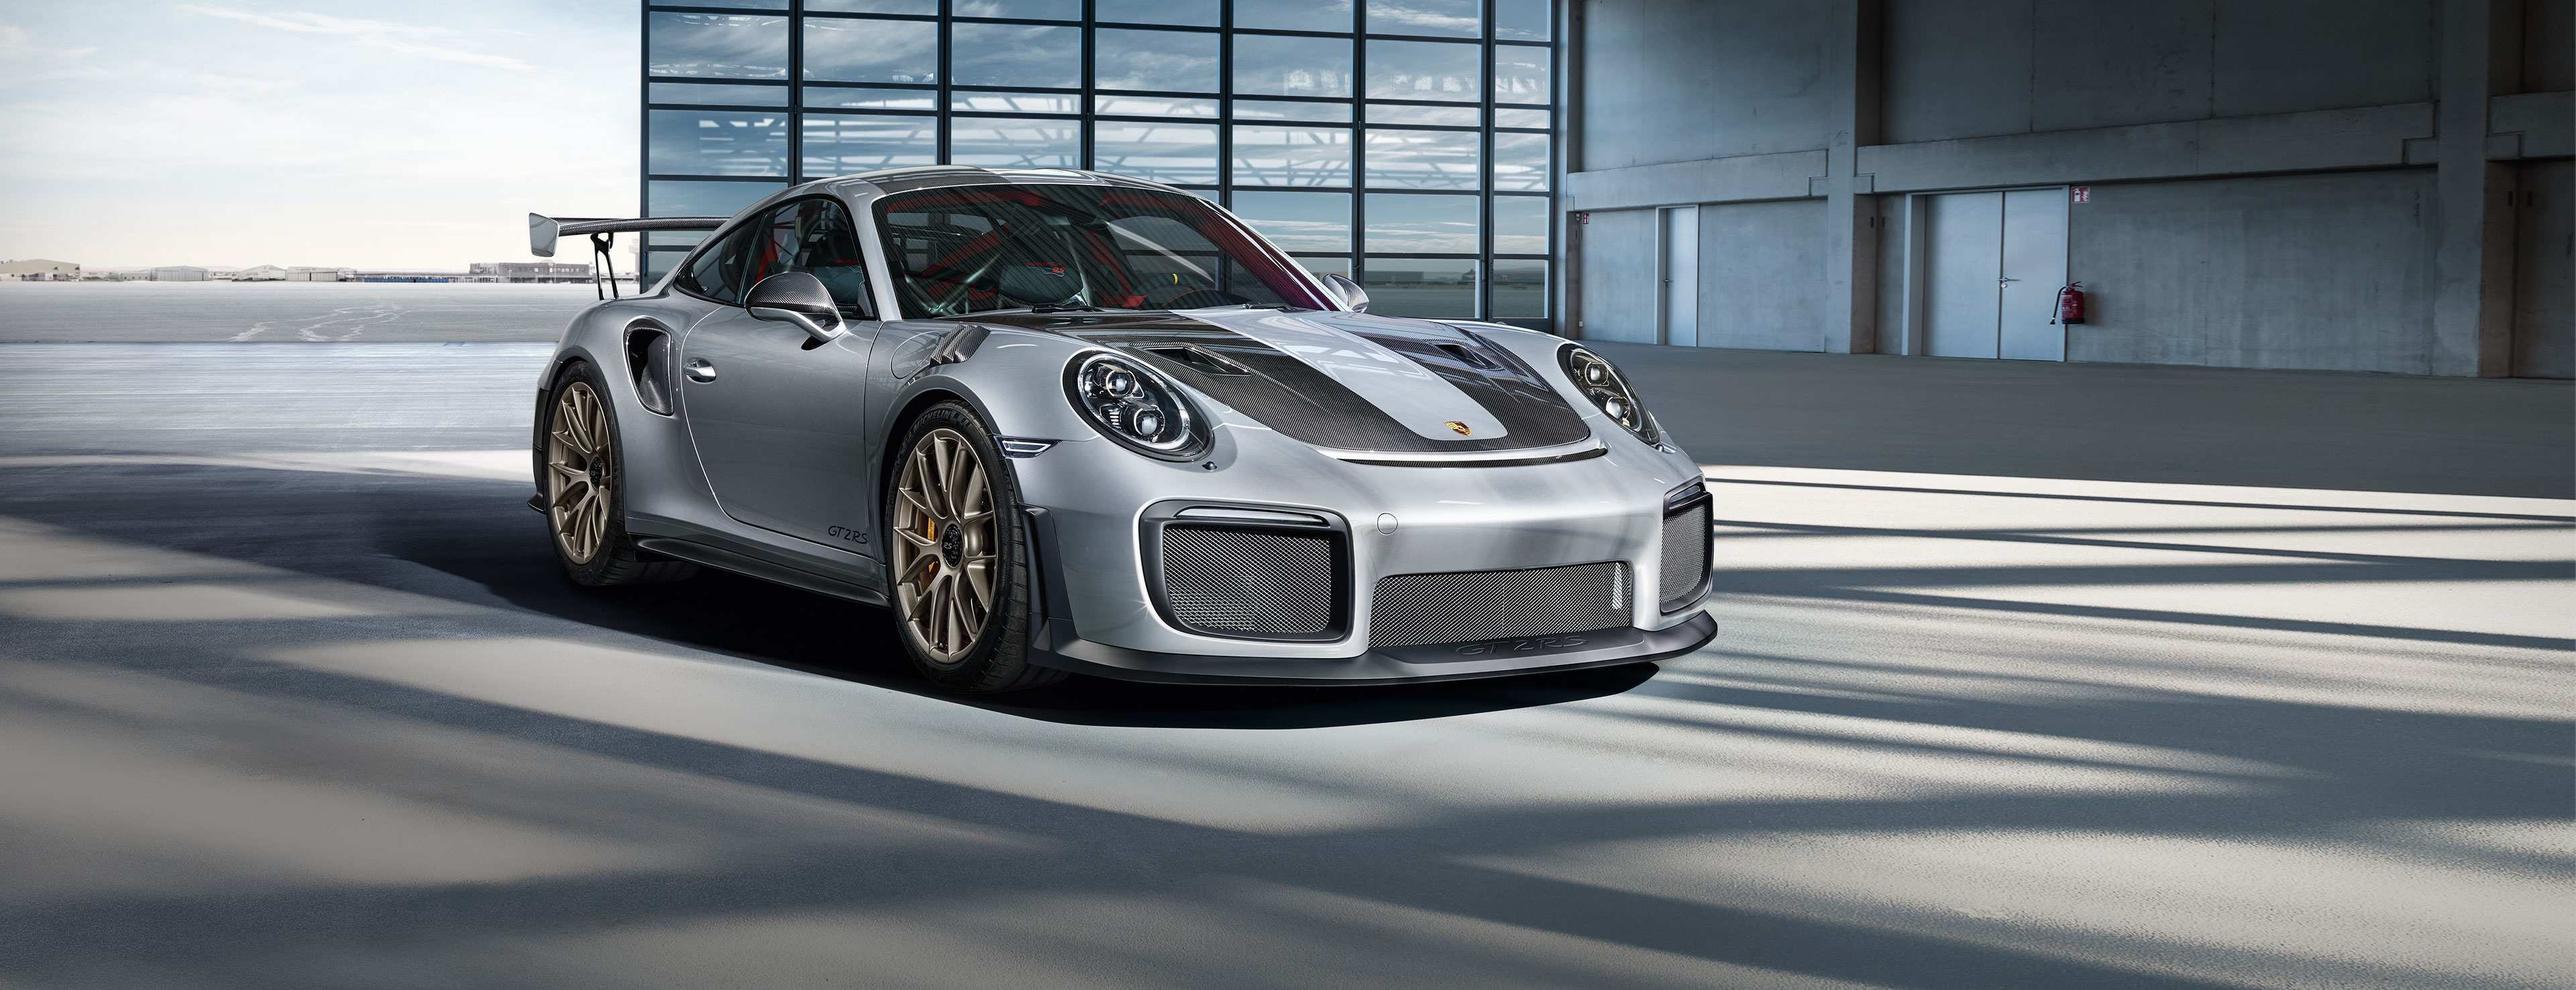 88 Great 2019 Porsche Gt2 Rs Price and Review for 2019 Porsche Gt2 Rs